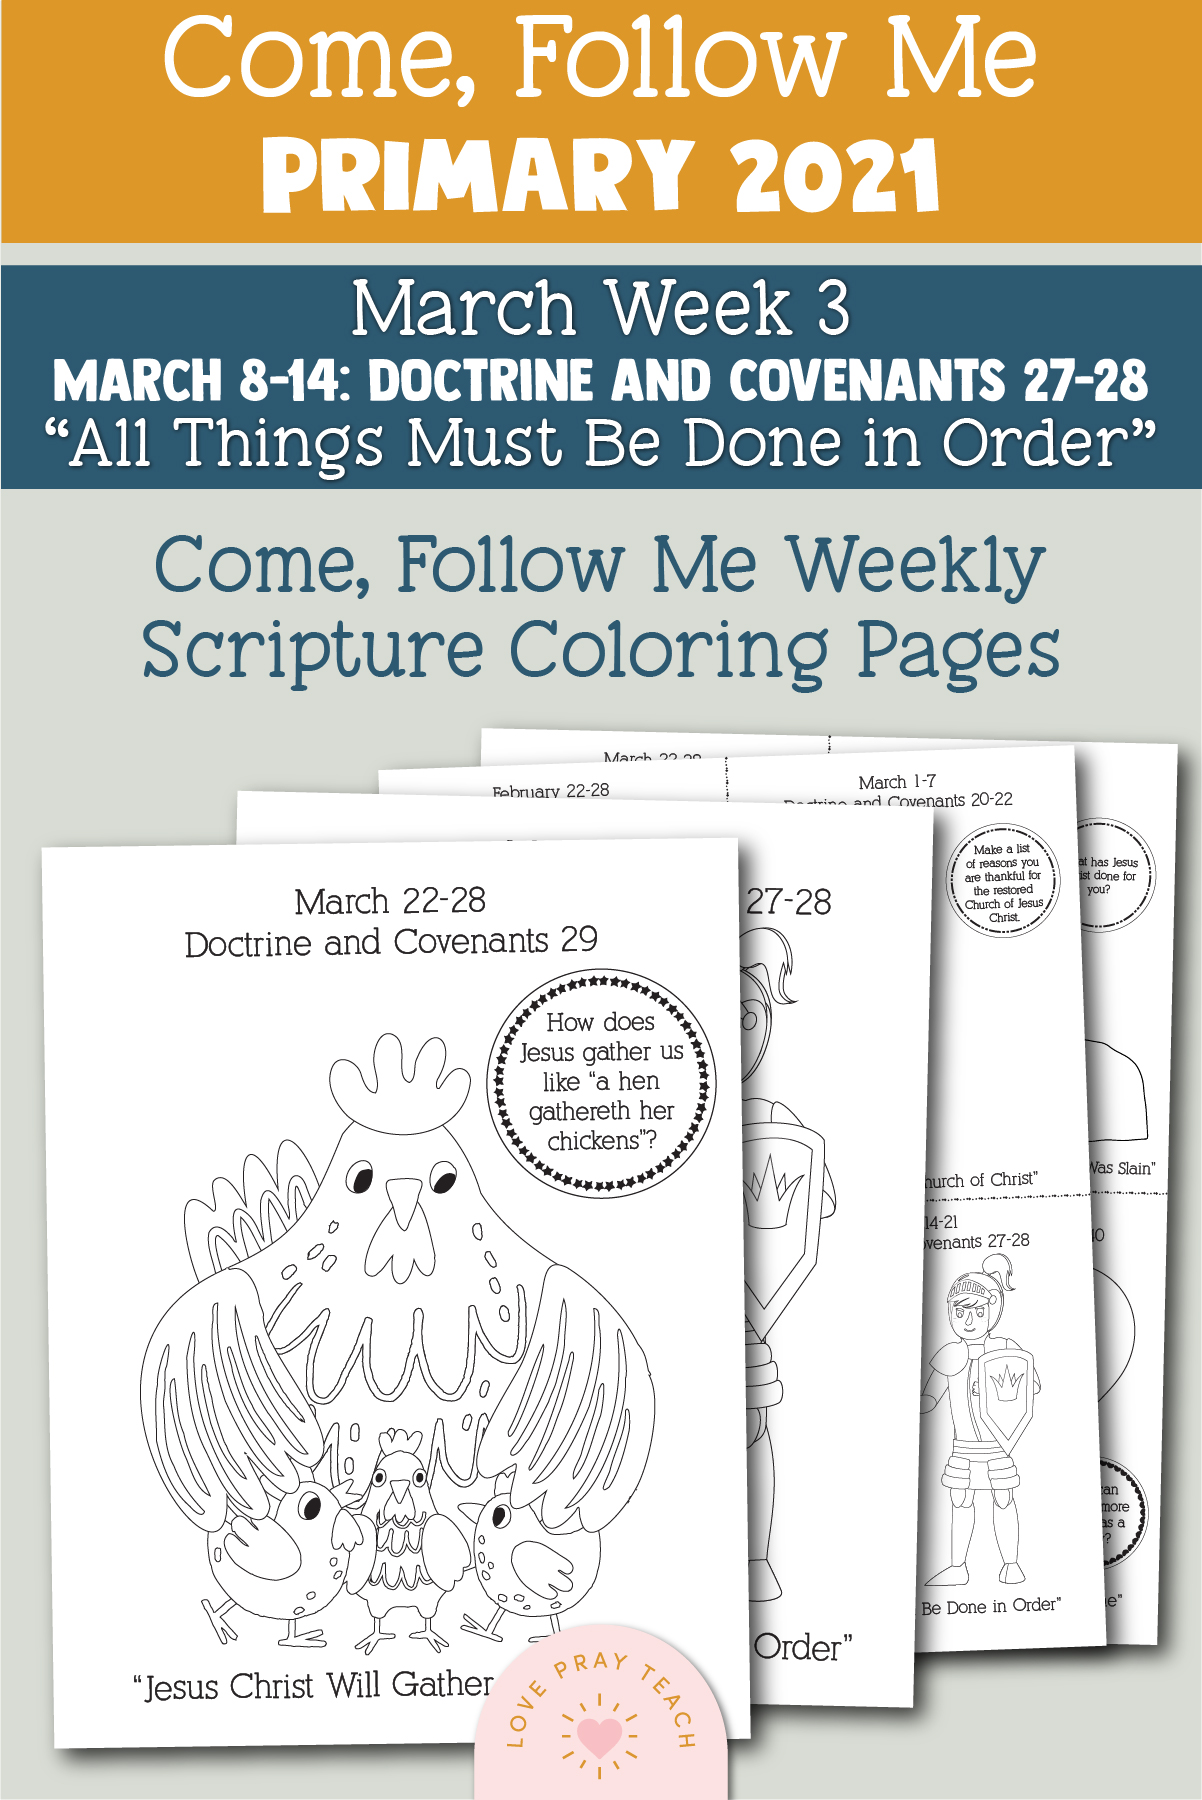 """Come, Follow Me for Primary 2021 March Week 3 Doctrine and Covenants 27-28 """"All Things Must Be Done in Order"""" Printable Lesson Materials"""